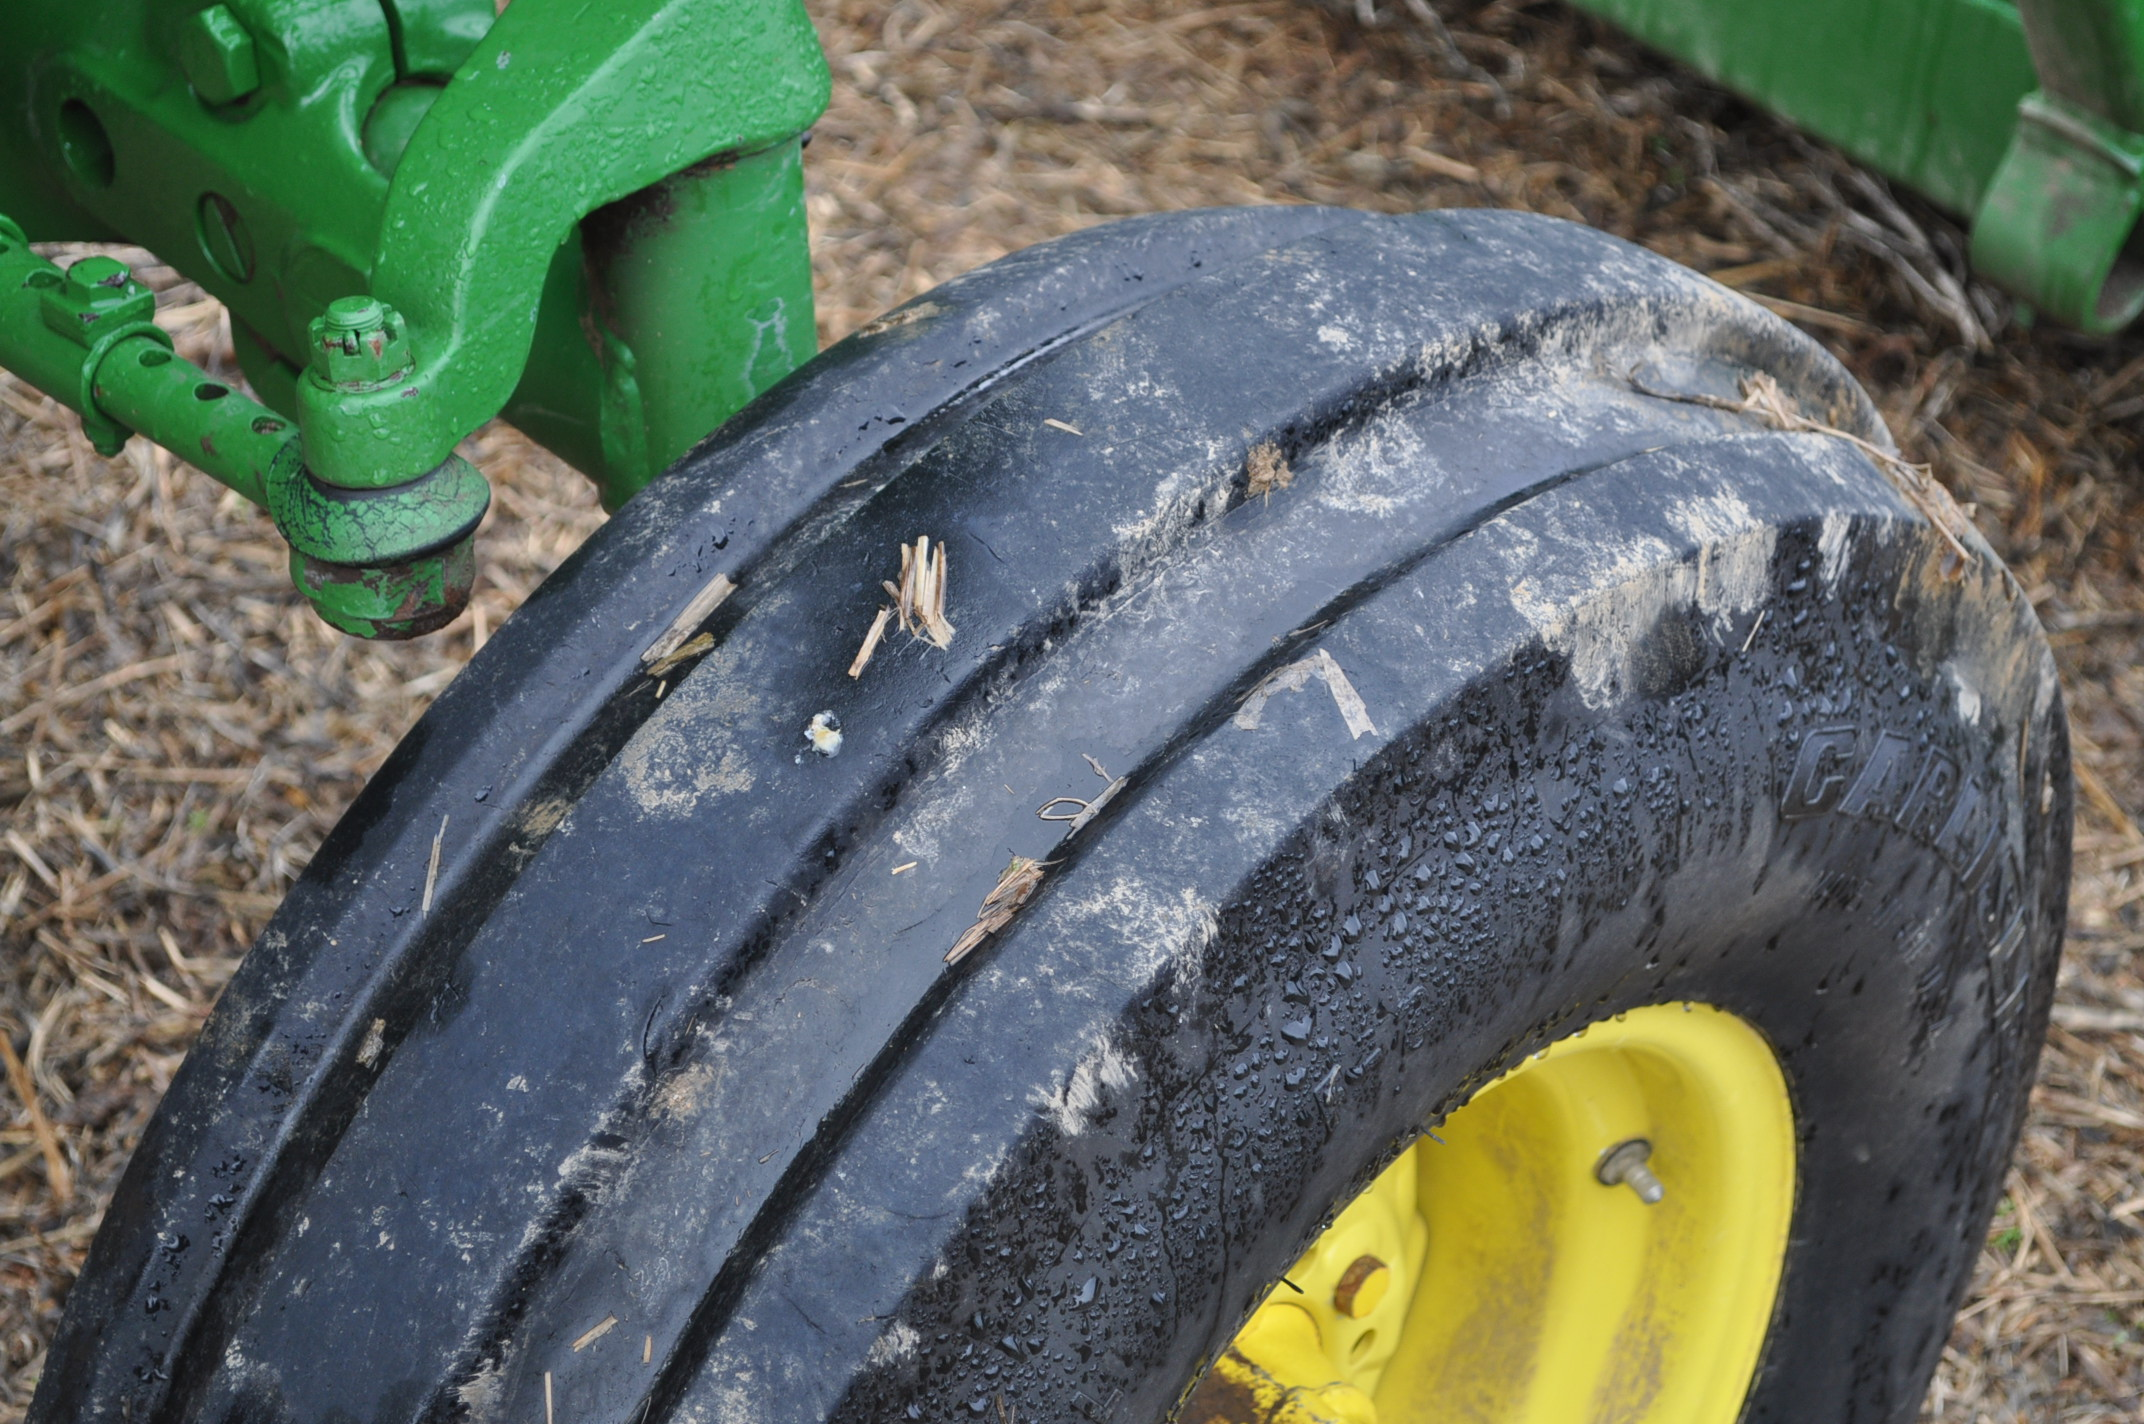 John Deere 4020 tractor, diesel, 18.4-34 tires w/ clamp on dual rims, 11L-15 front, ROPS w/ - Image 9 of 22